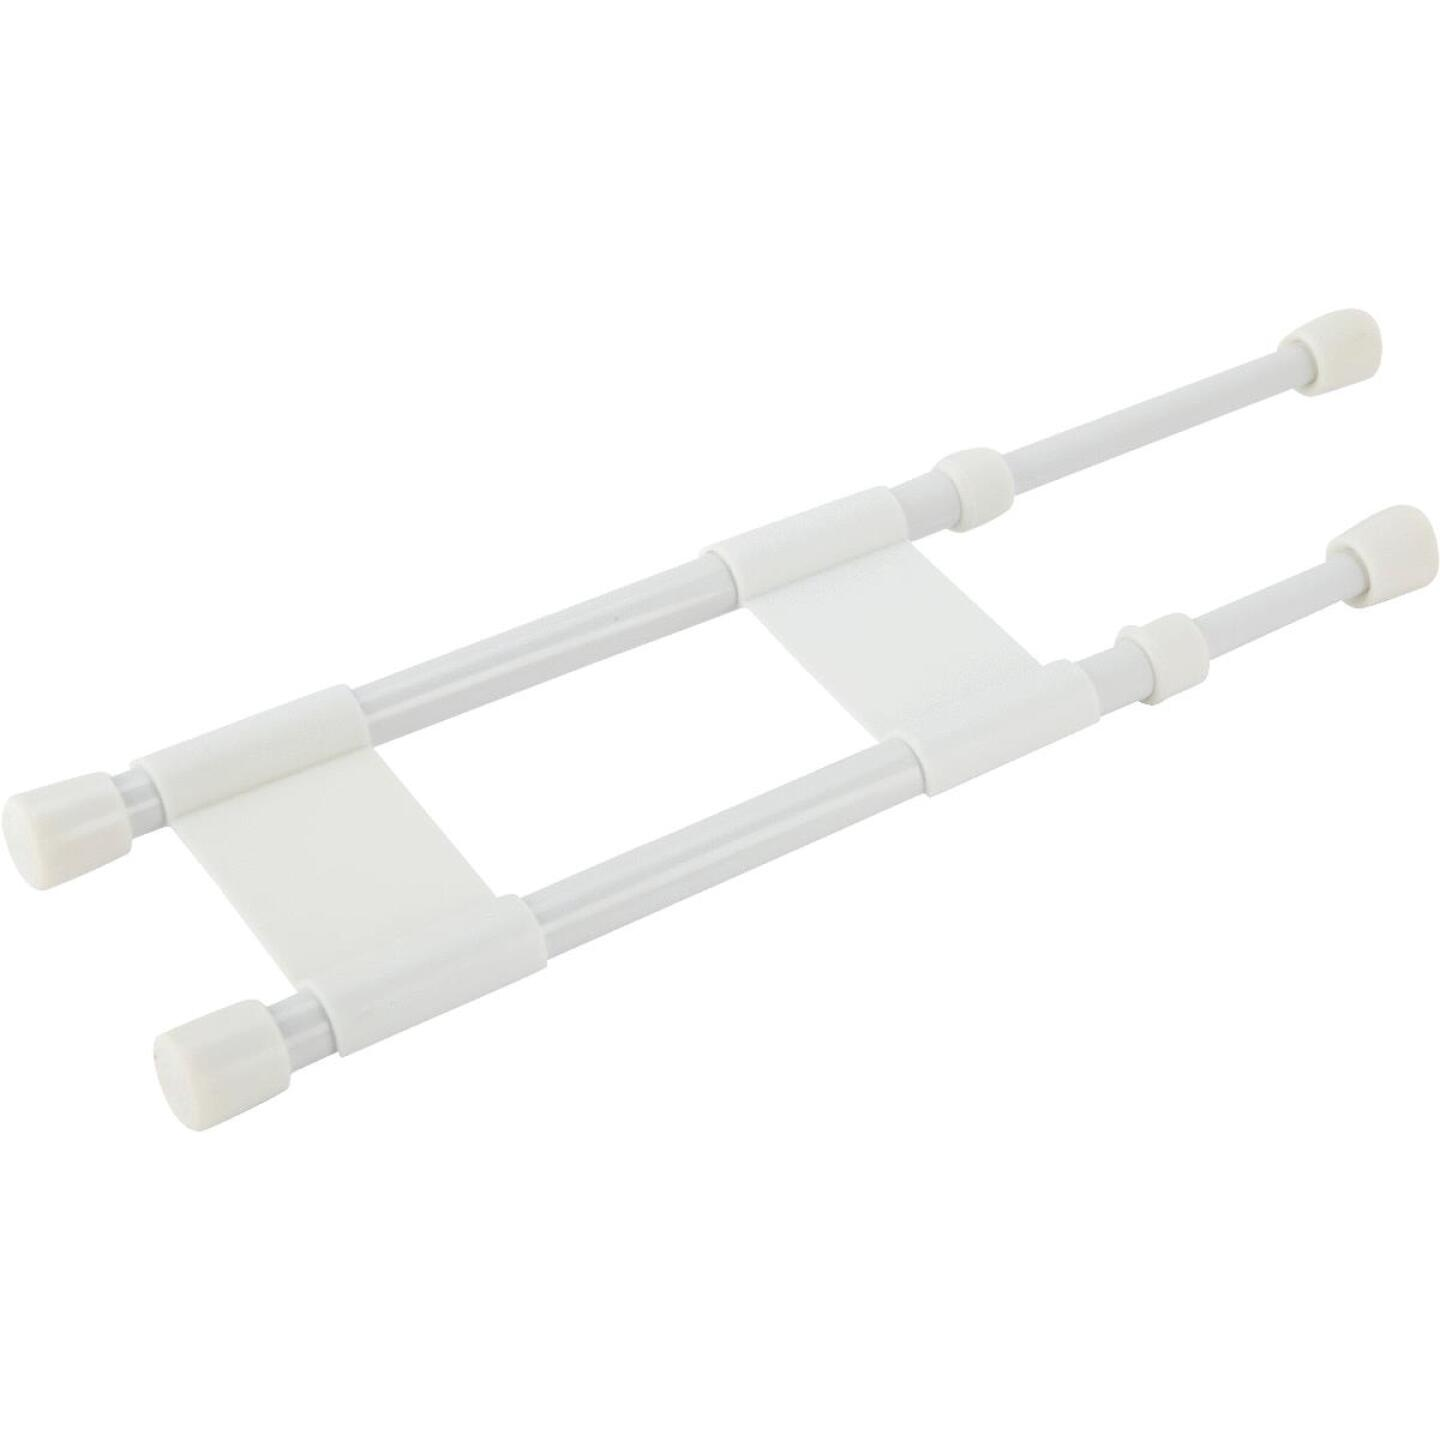 Camco Extends 10 In. to 17 In. White Cupboard RV Storage Bar Image 1